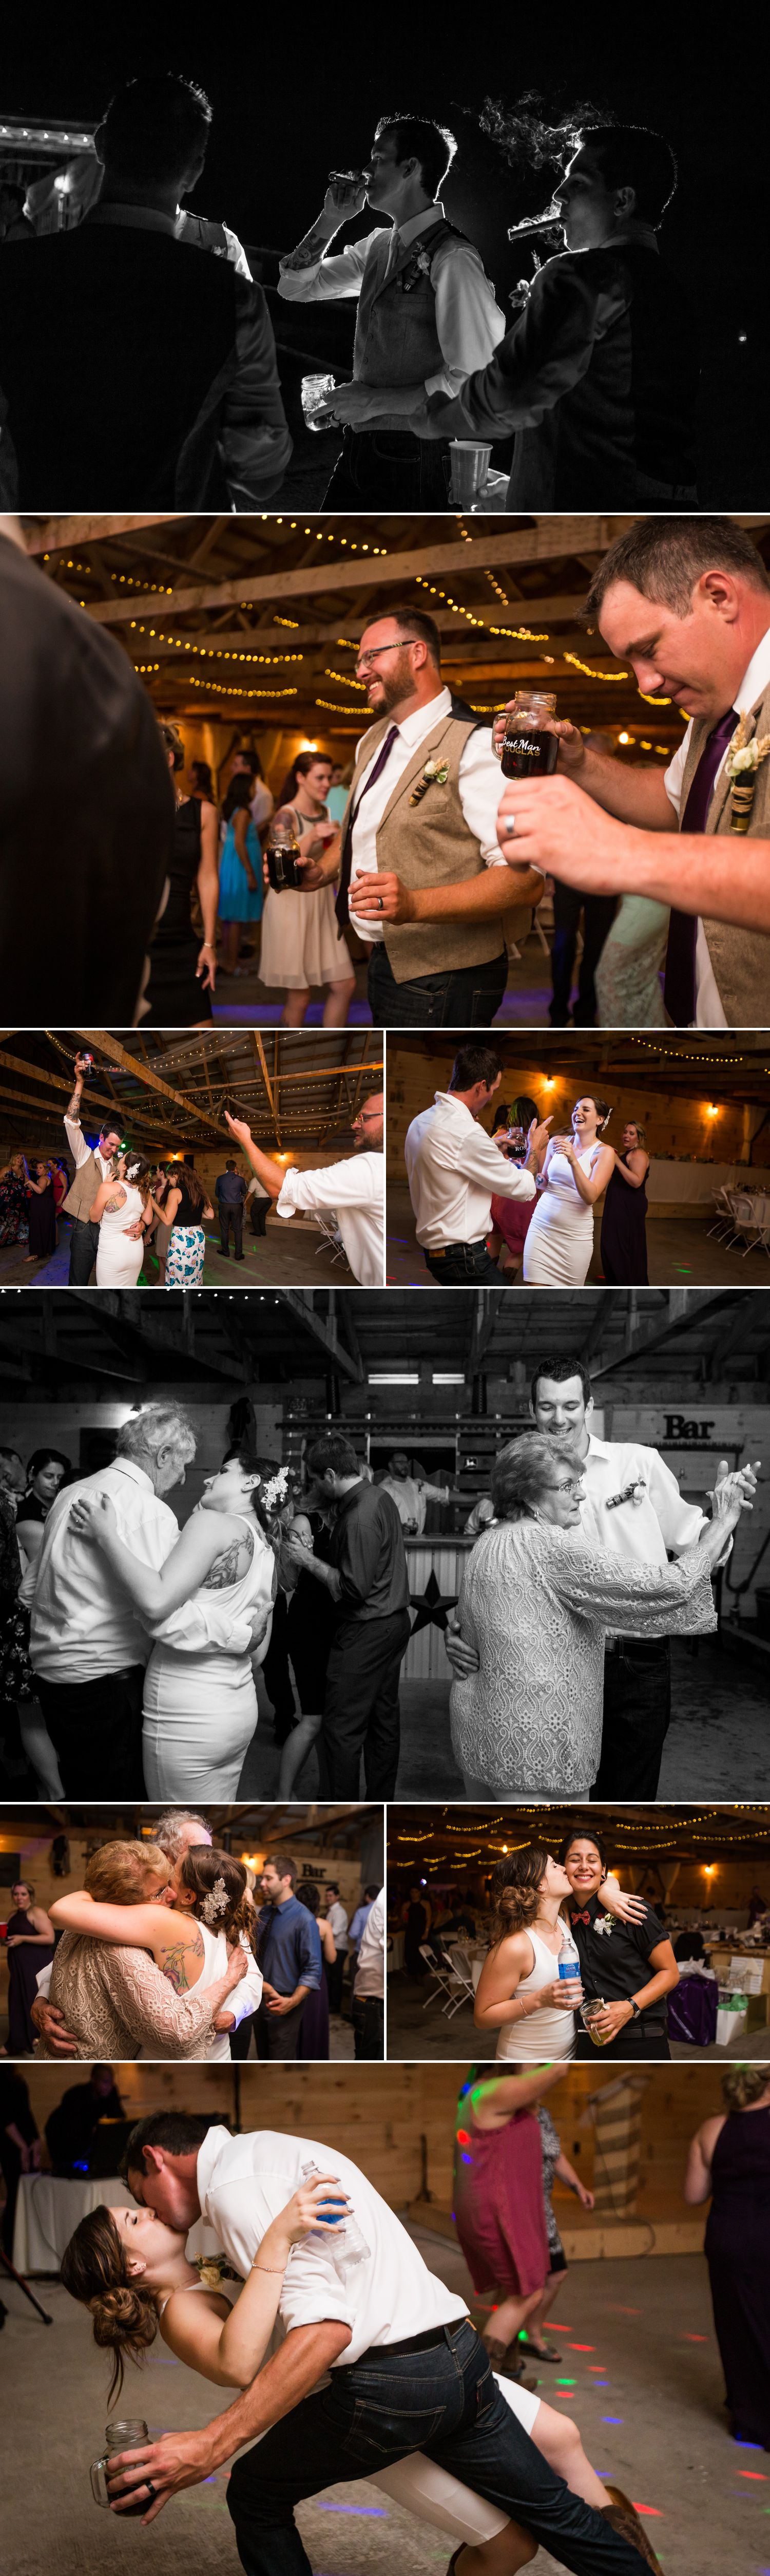 A wedding reception at the couple's newly renovated barn in Carp